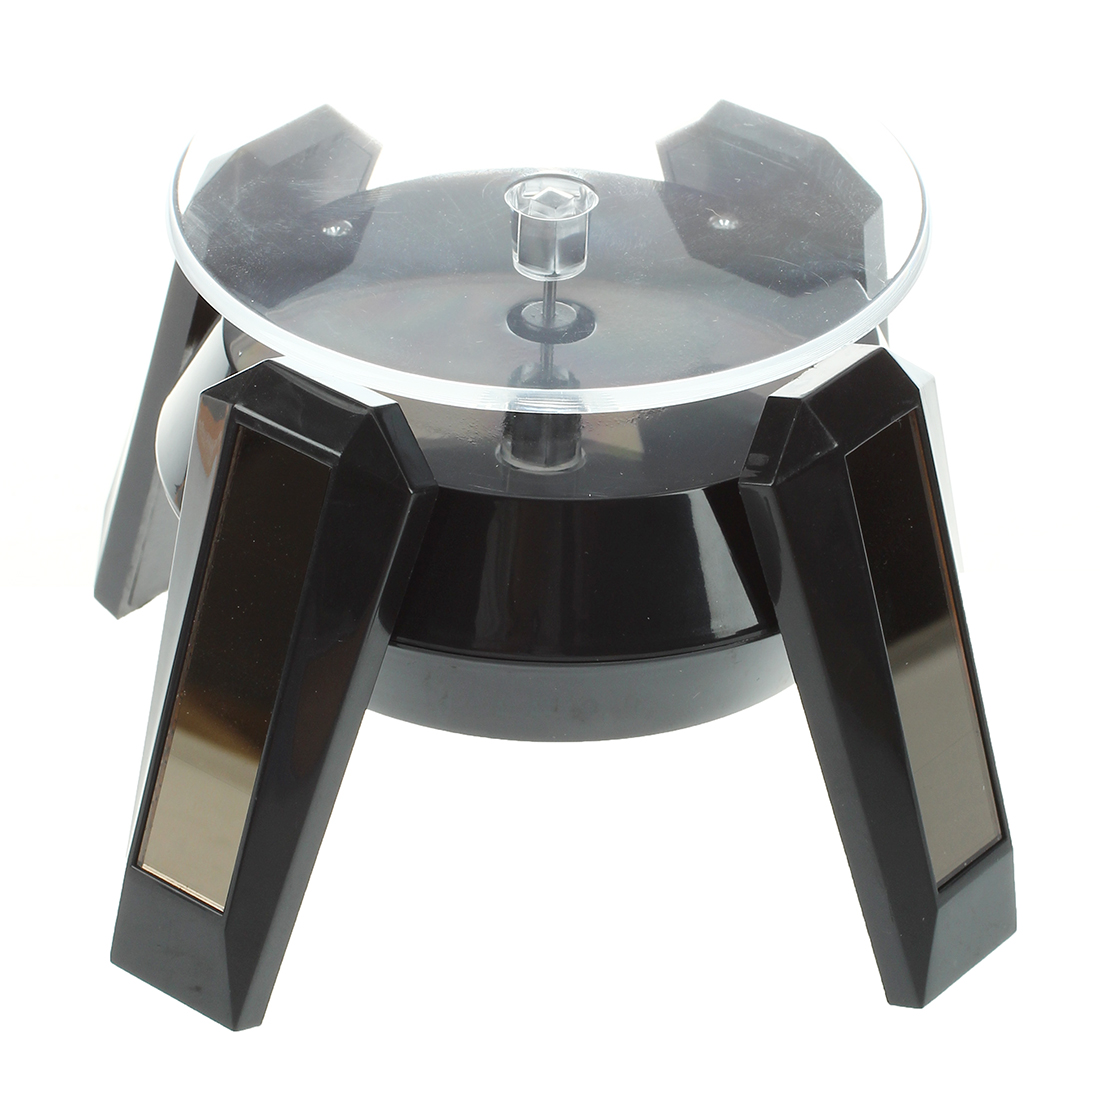 Black Solar Powered Jewelry Phone Watch 360 angle Rotating Display Stand Turn Table with LED Light